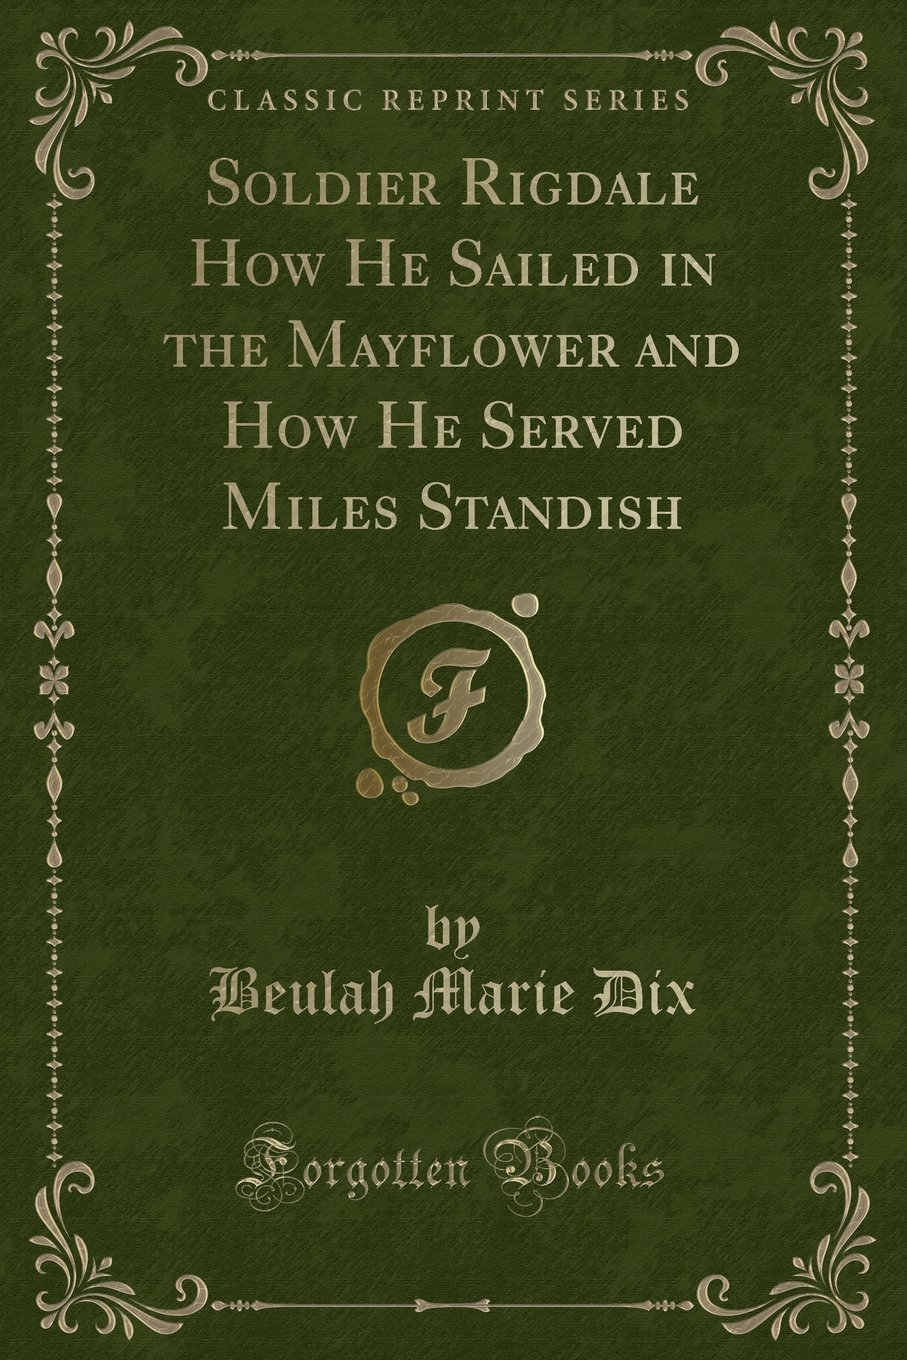 Soldier Rigdale How He Sailed in the Mayflower and How He Served Miles Standish (Classic Reprint) ebook